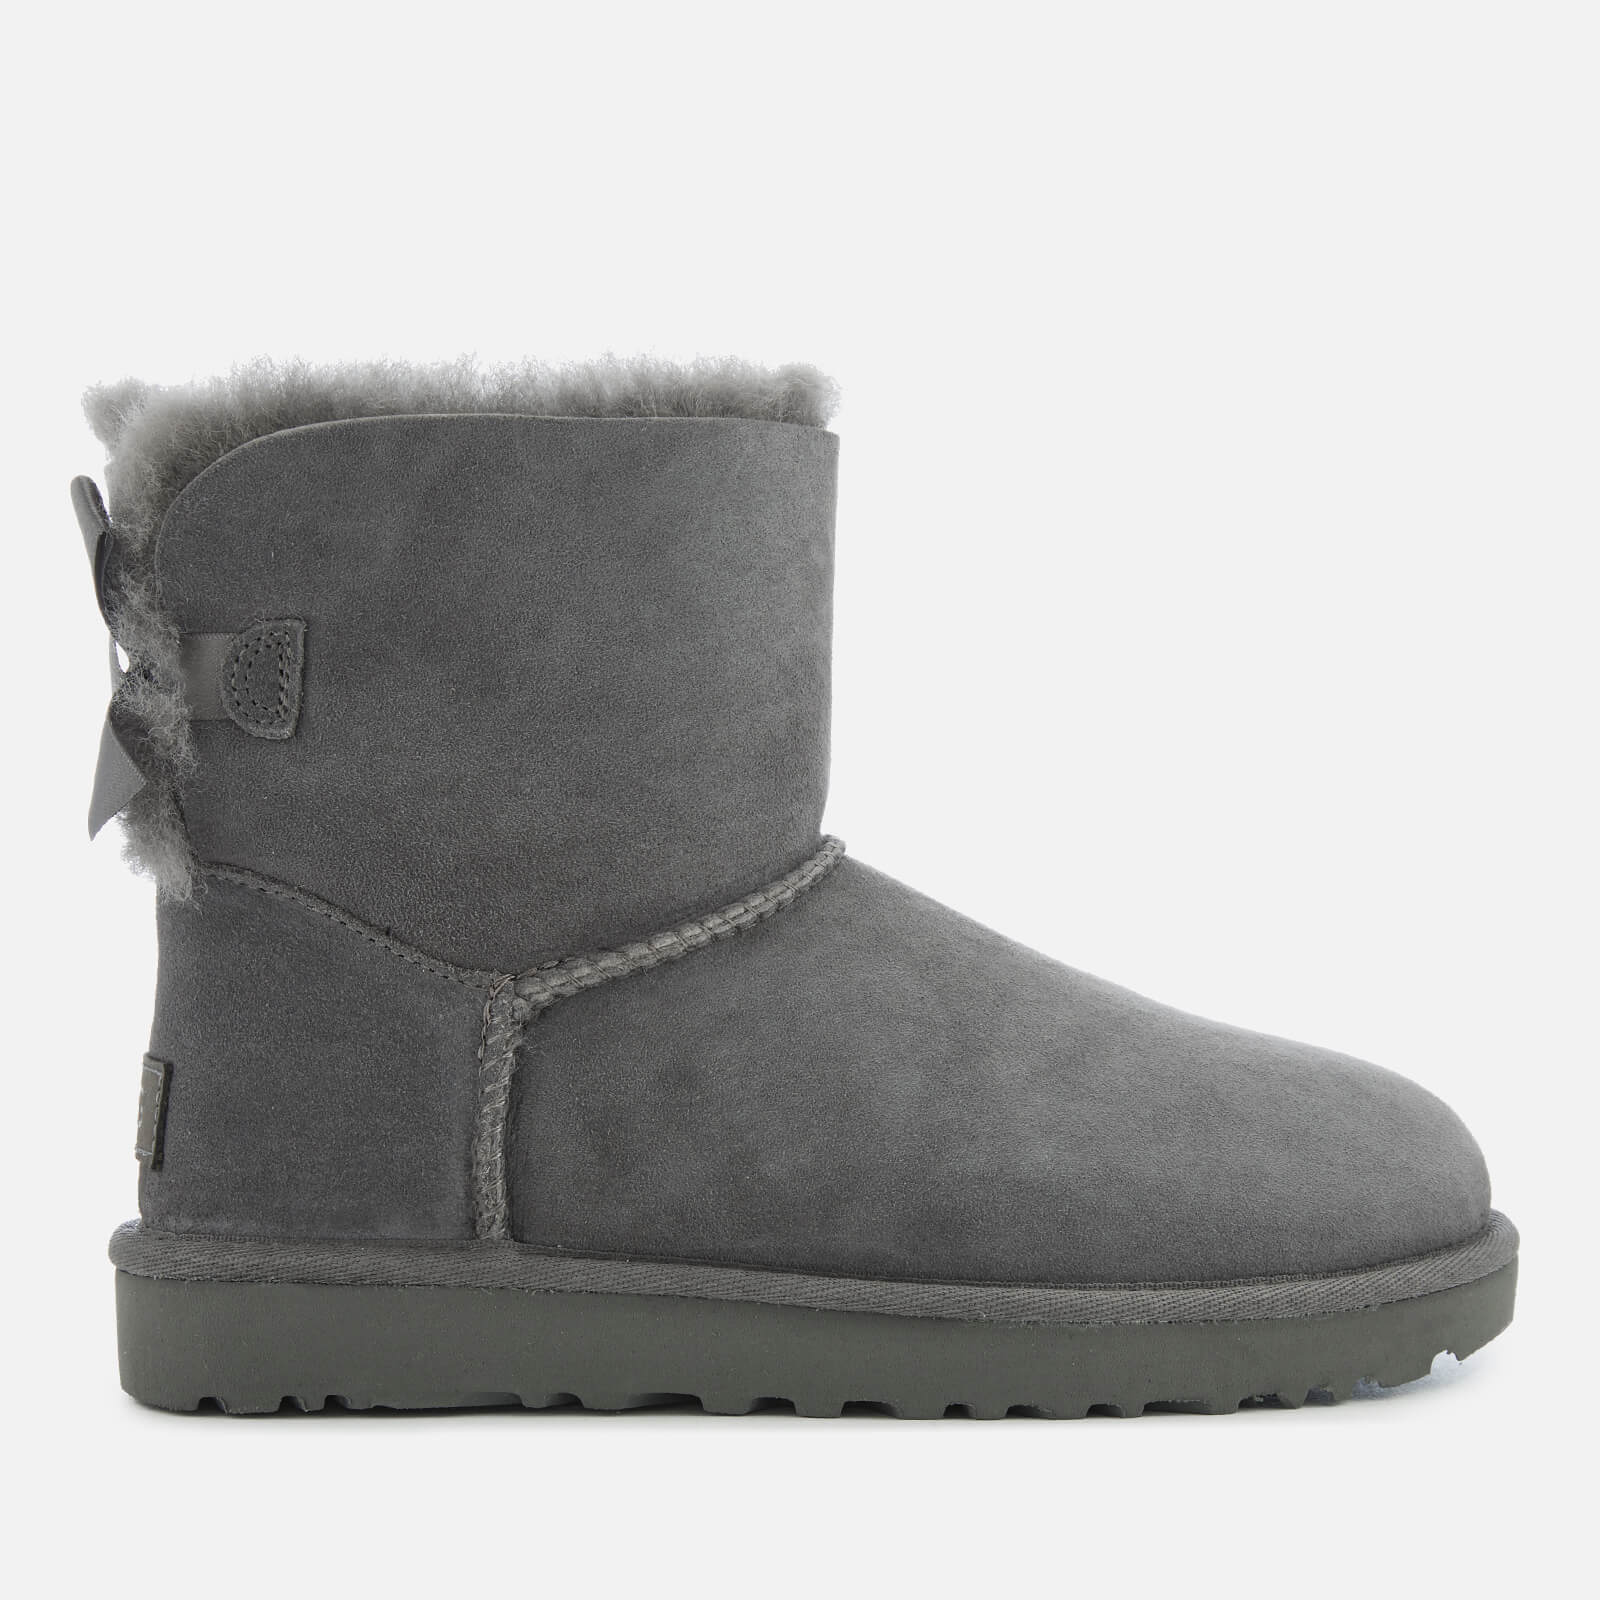 UGG Women's Mini Bailey Bow II Sheepskin Boots - Grey - UK 5